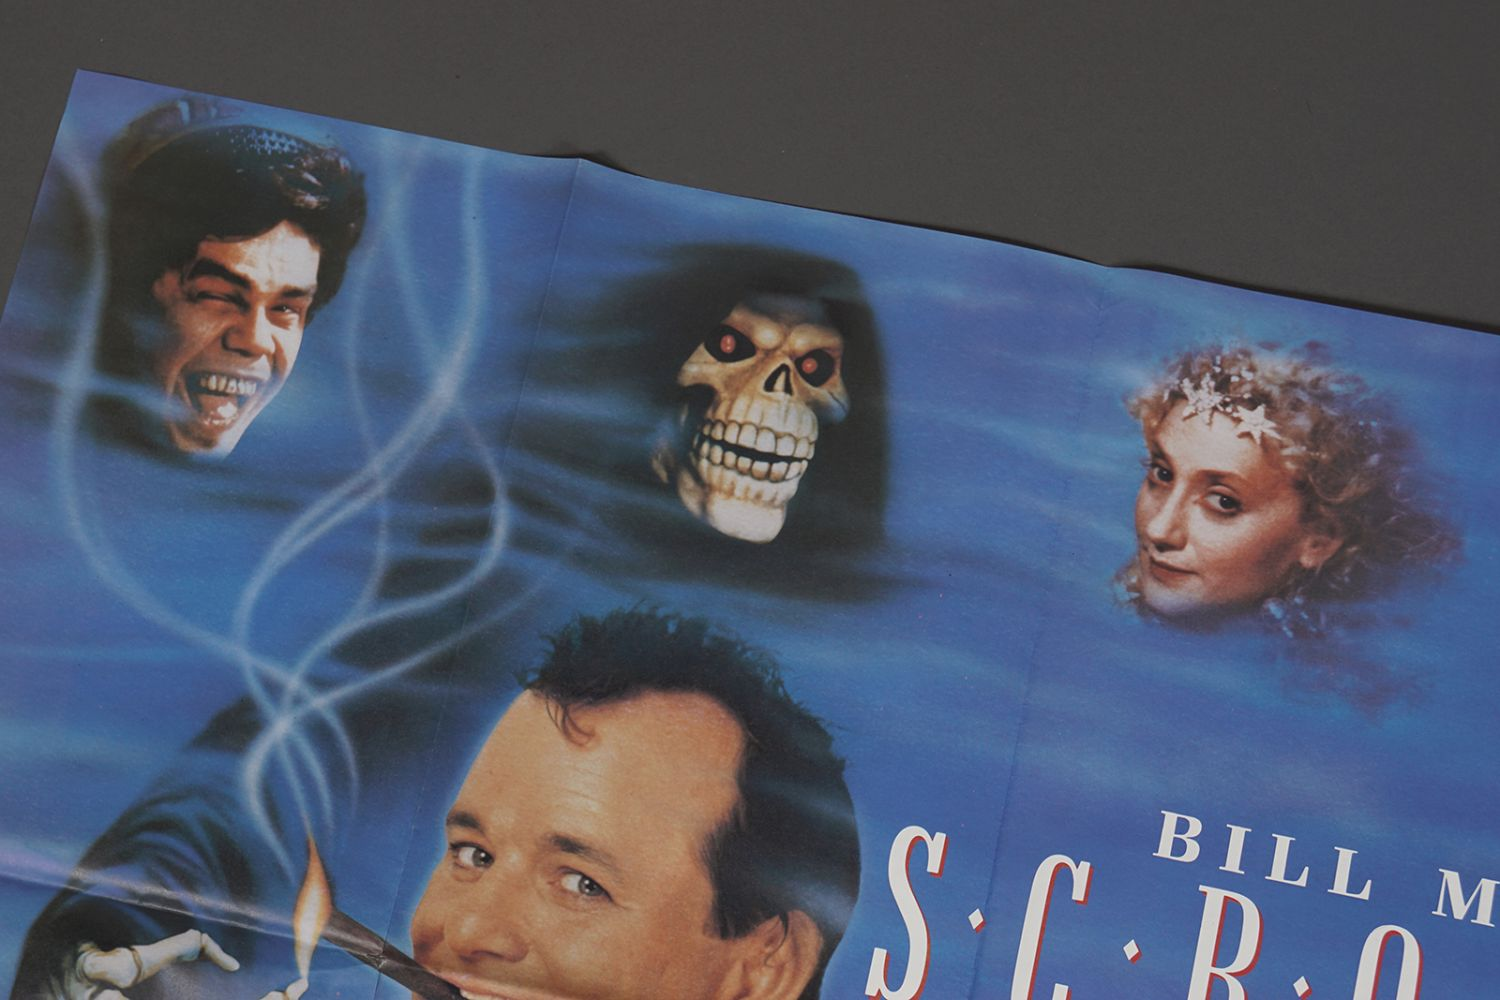 SCROOGED - Image 4 of 4